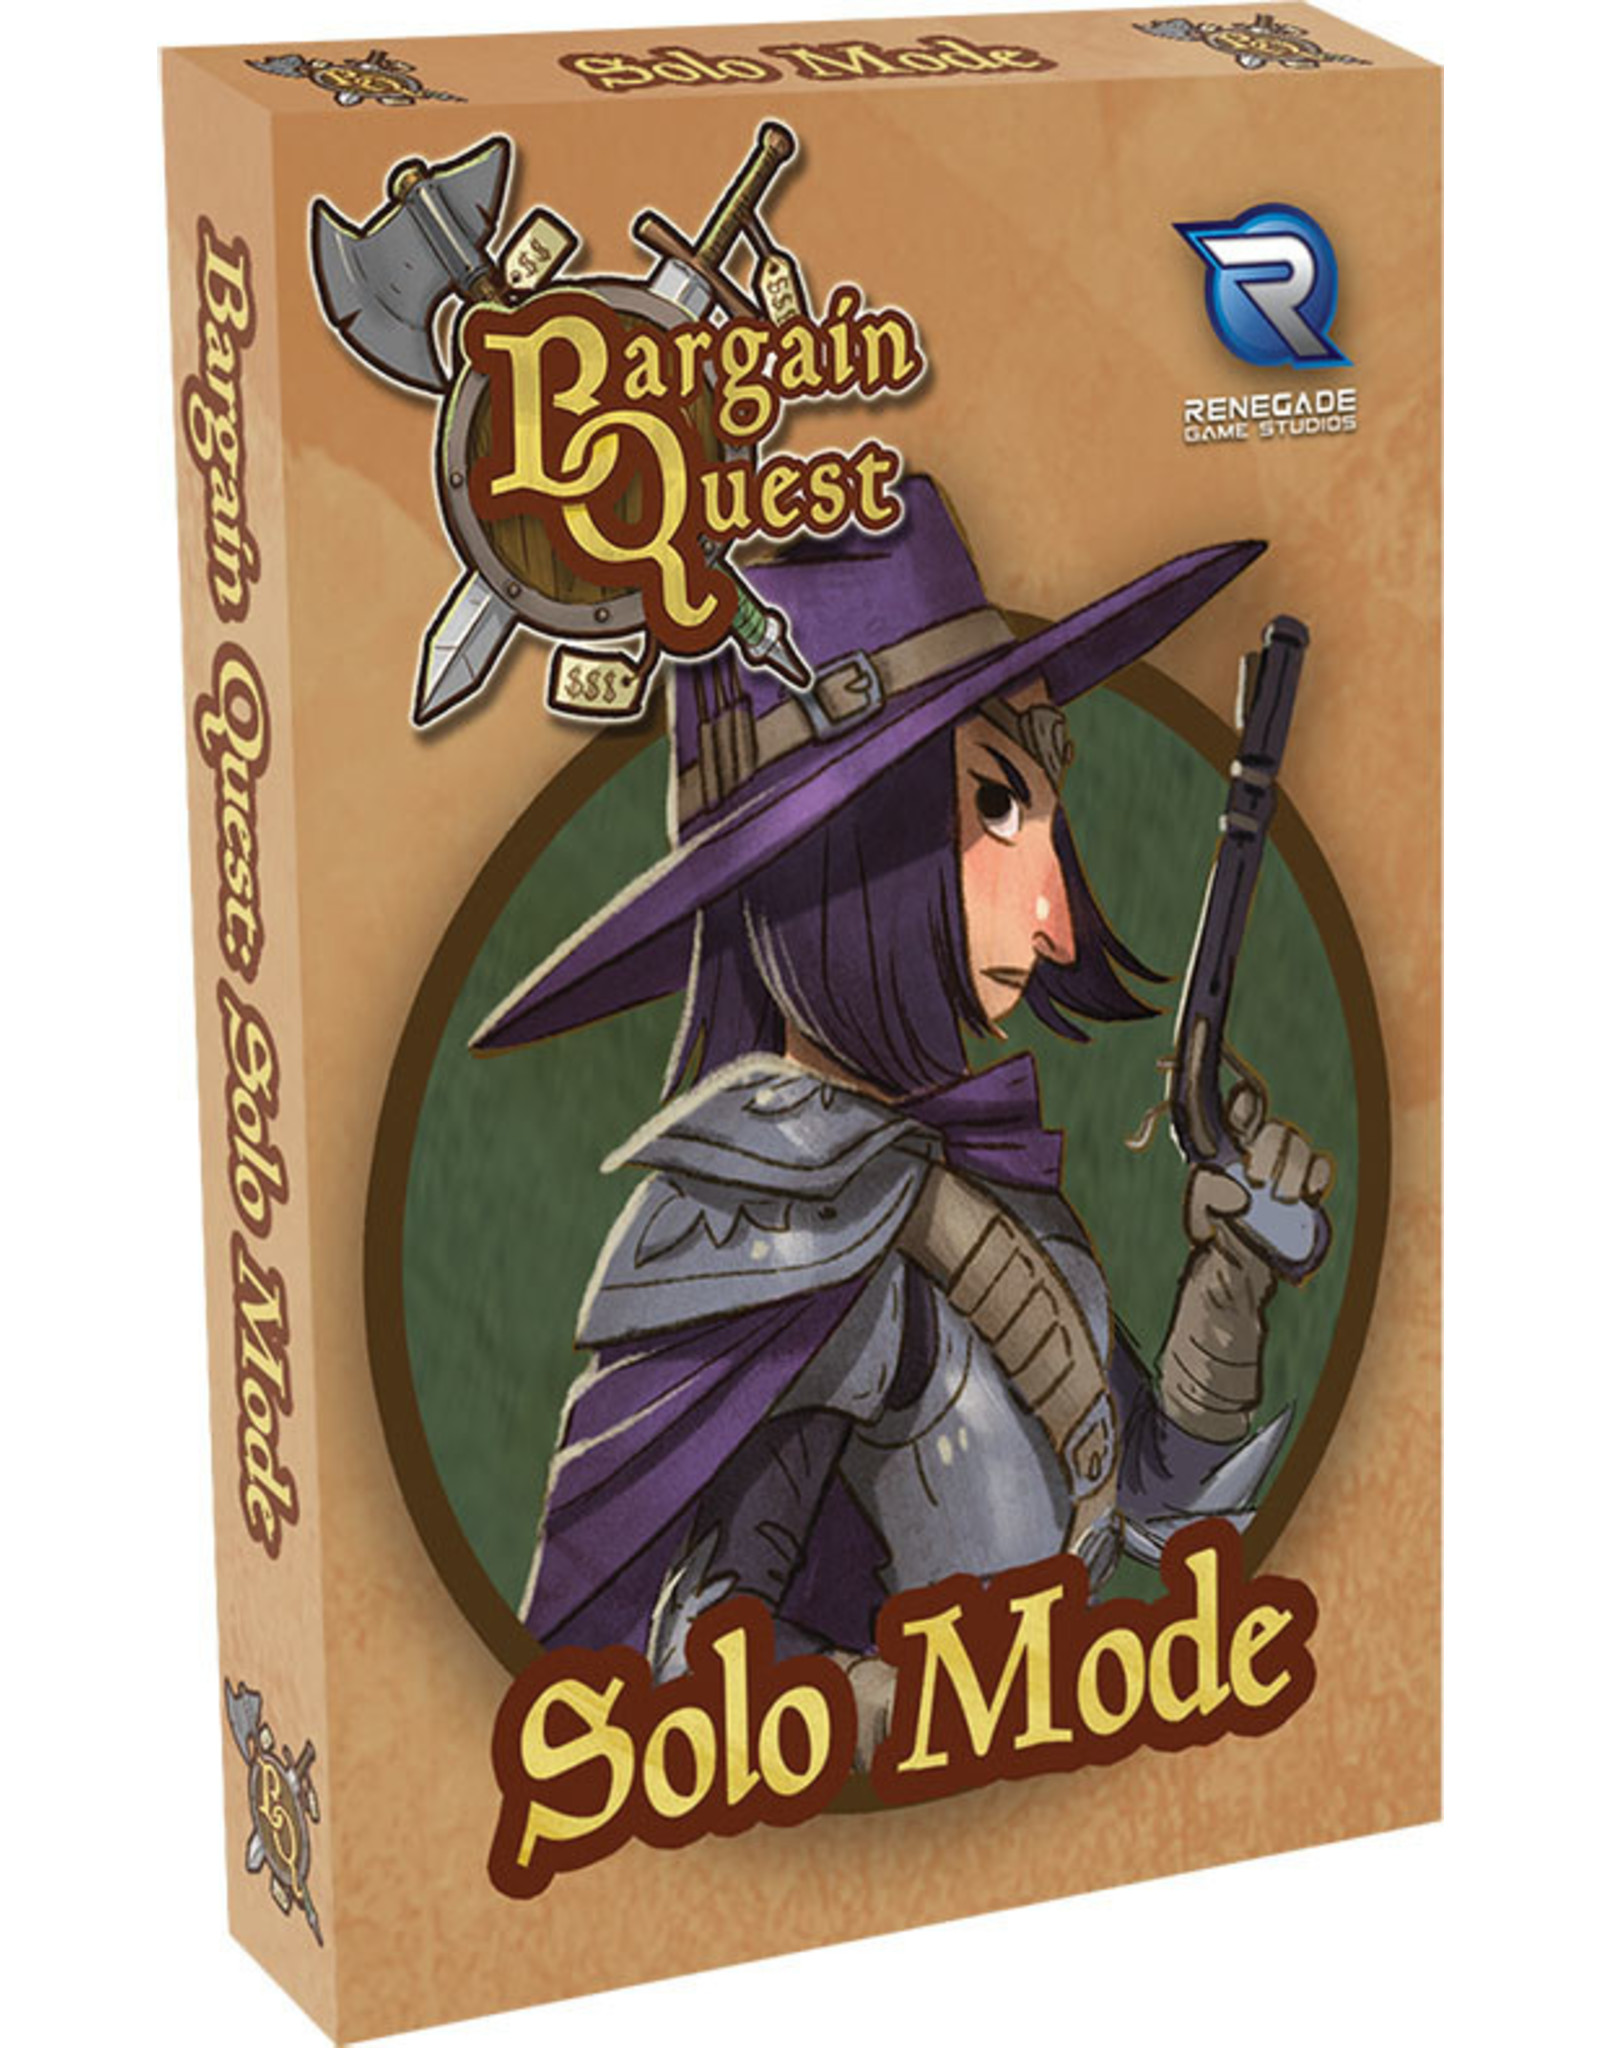 Renegade Bargain Quest: Solo Mode Expansion